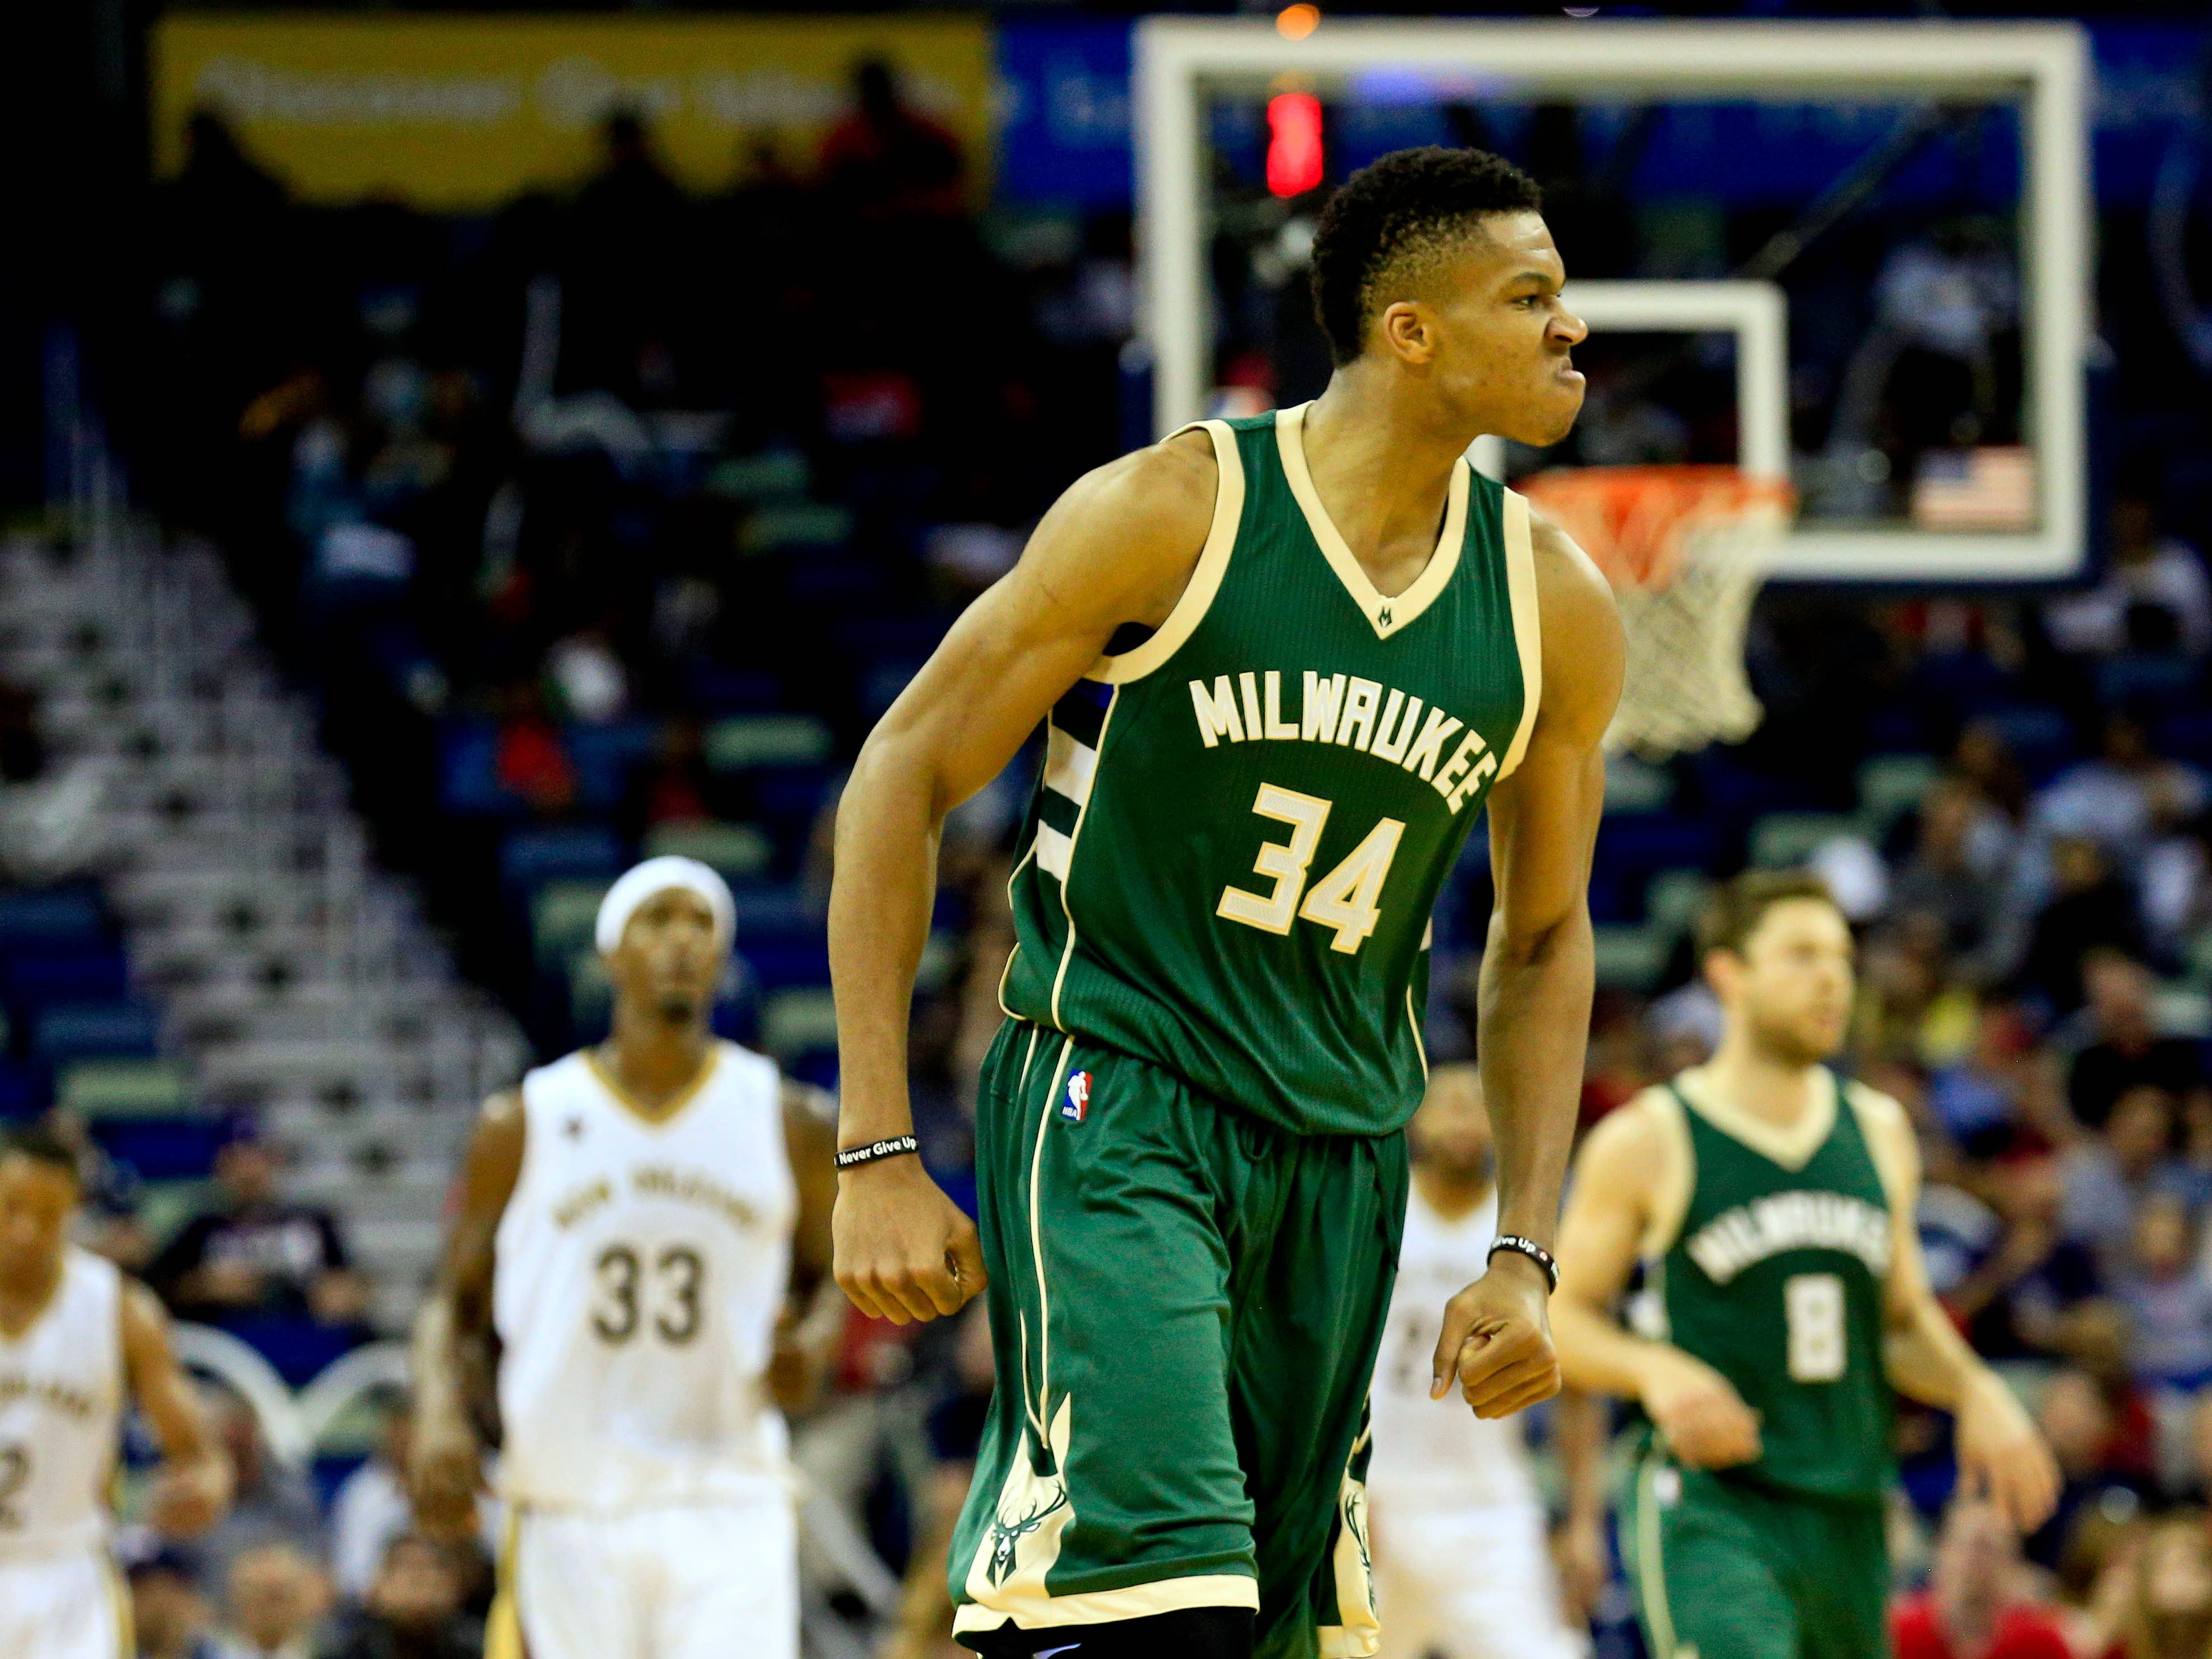 Antetokounmpo flexes after a basket during a 2016 game against New Orleans.